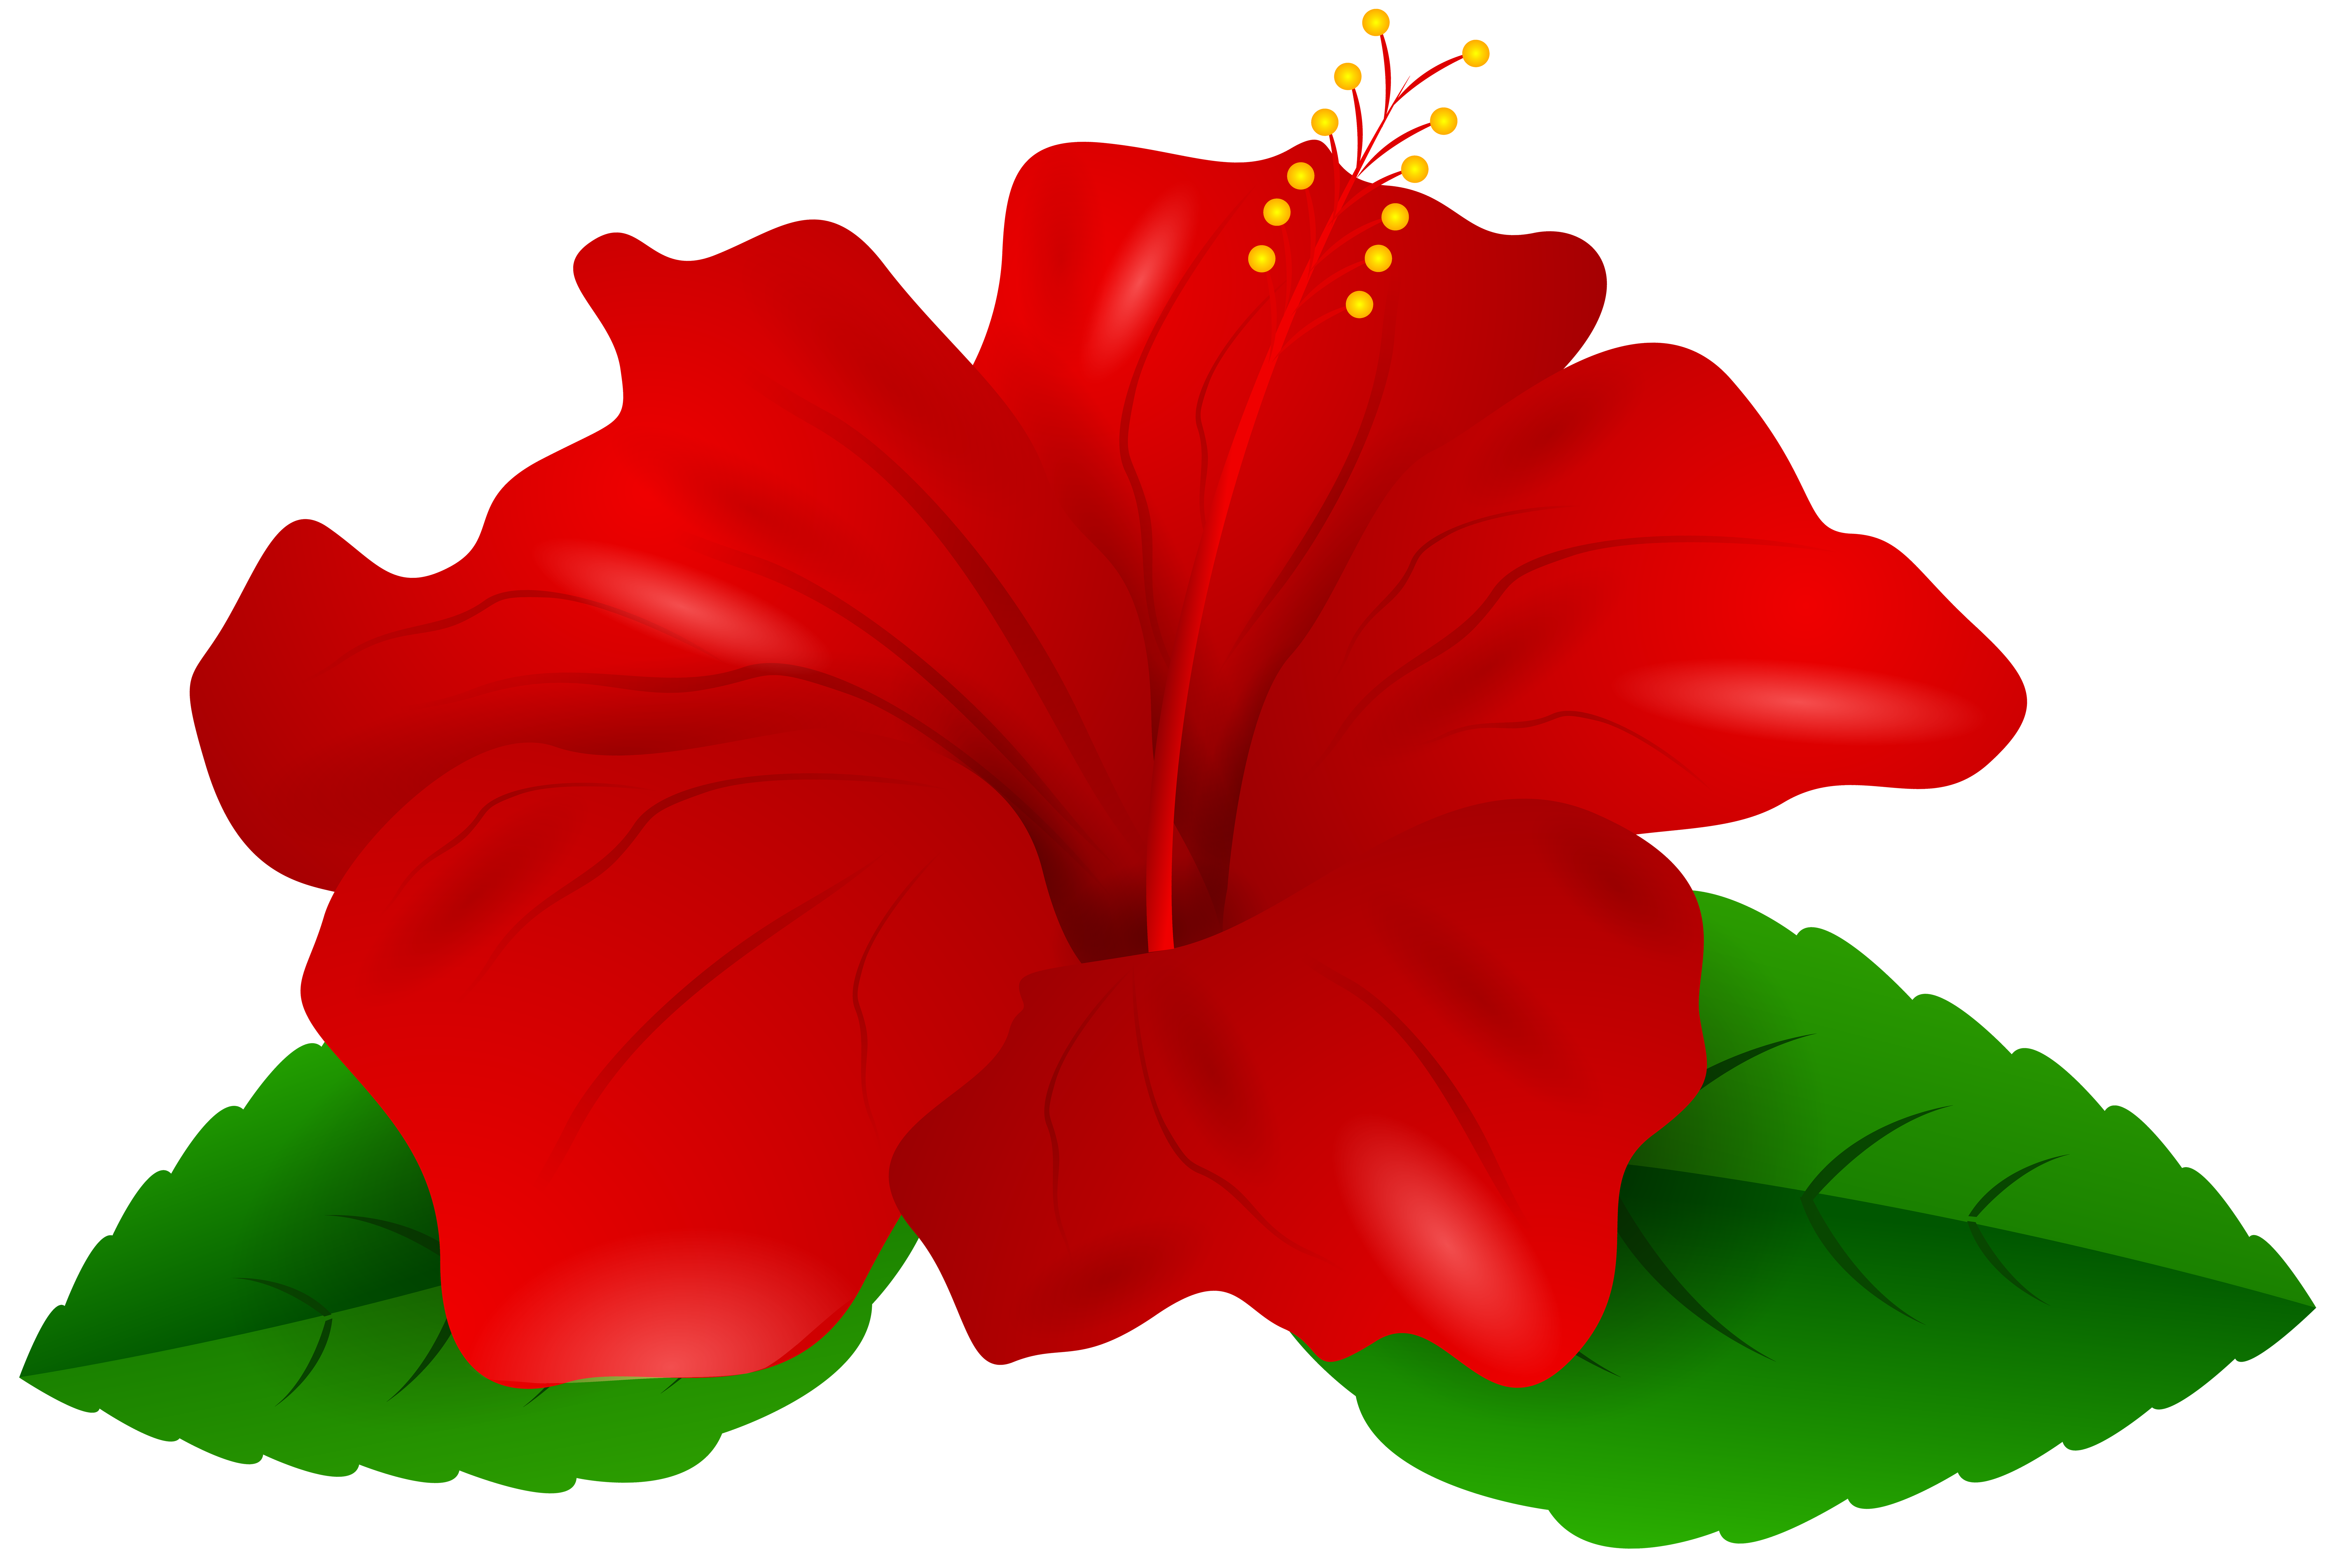 8000x5376 Red Hibiscus Transparent Png Clip Artu200b Gallery Yopriceville